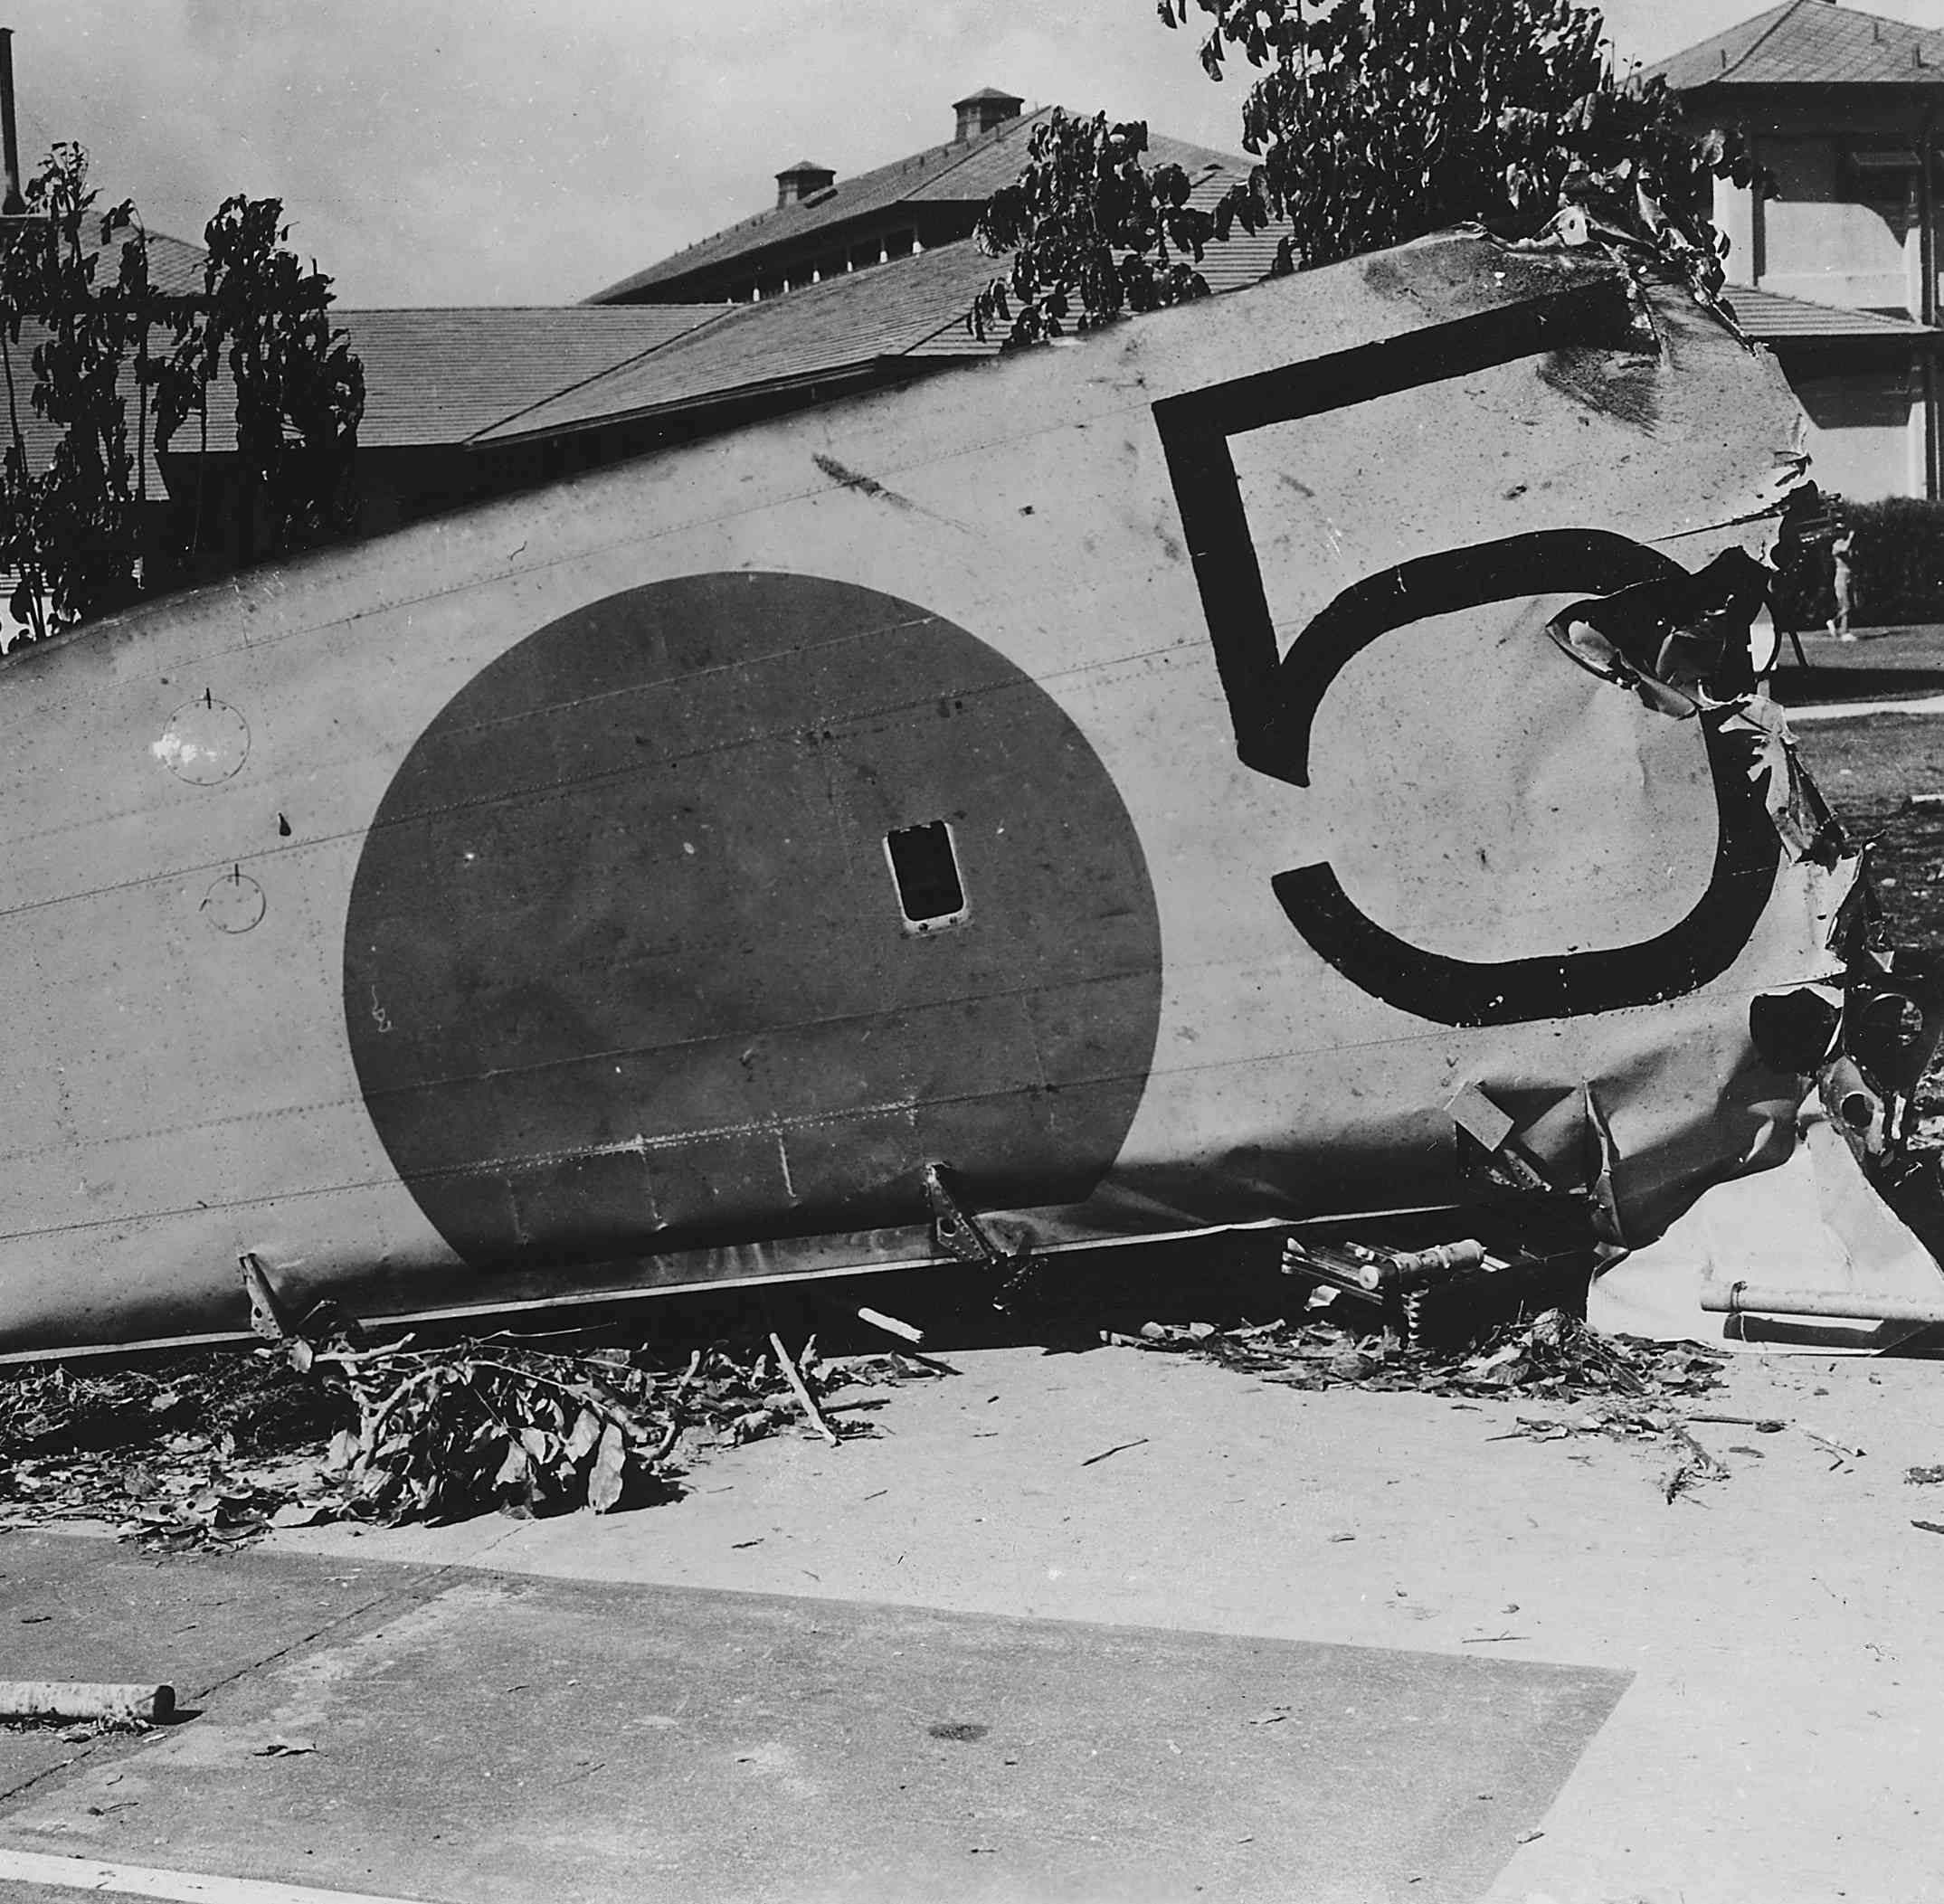 Wreckage of a Japanese bomber after the attack on Pearl Harbor.